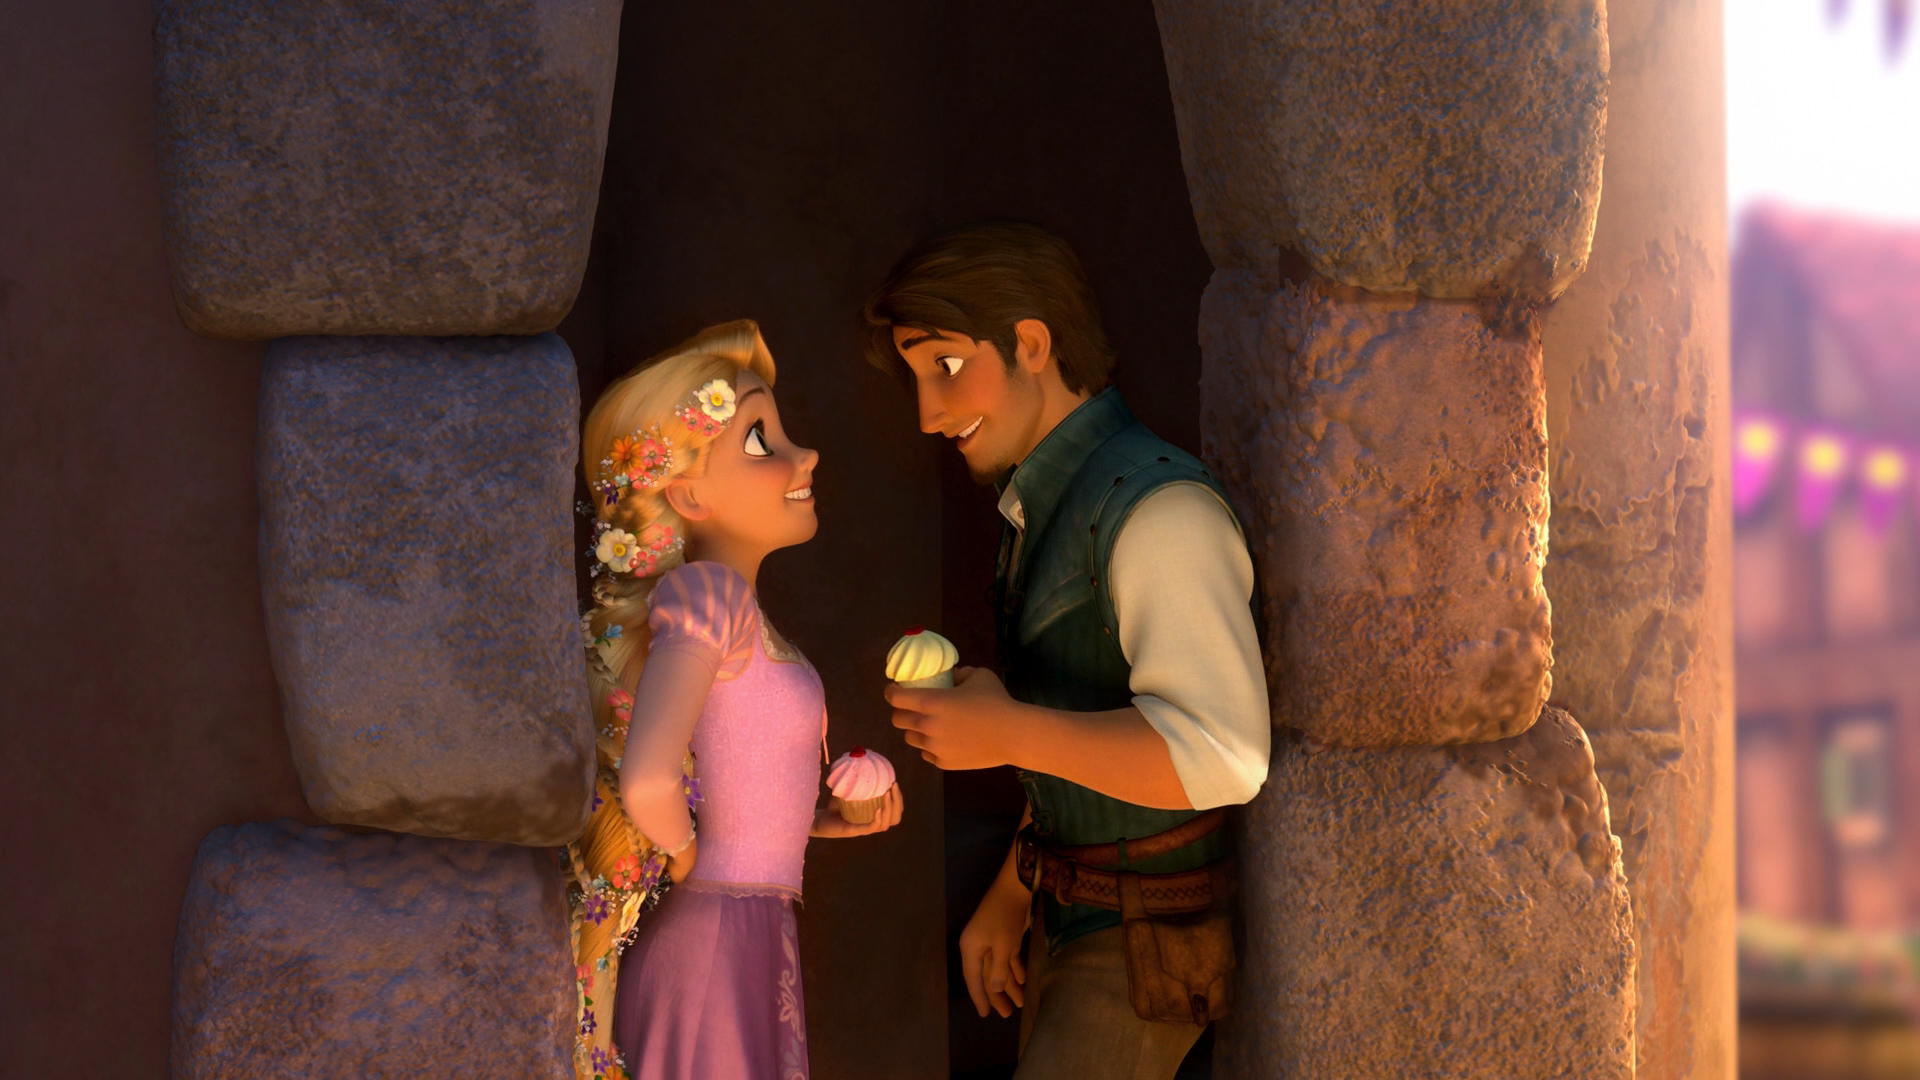 Tangled Images Flynn And Rapunzel 4ever Love HD Wallpaper Background Photos